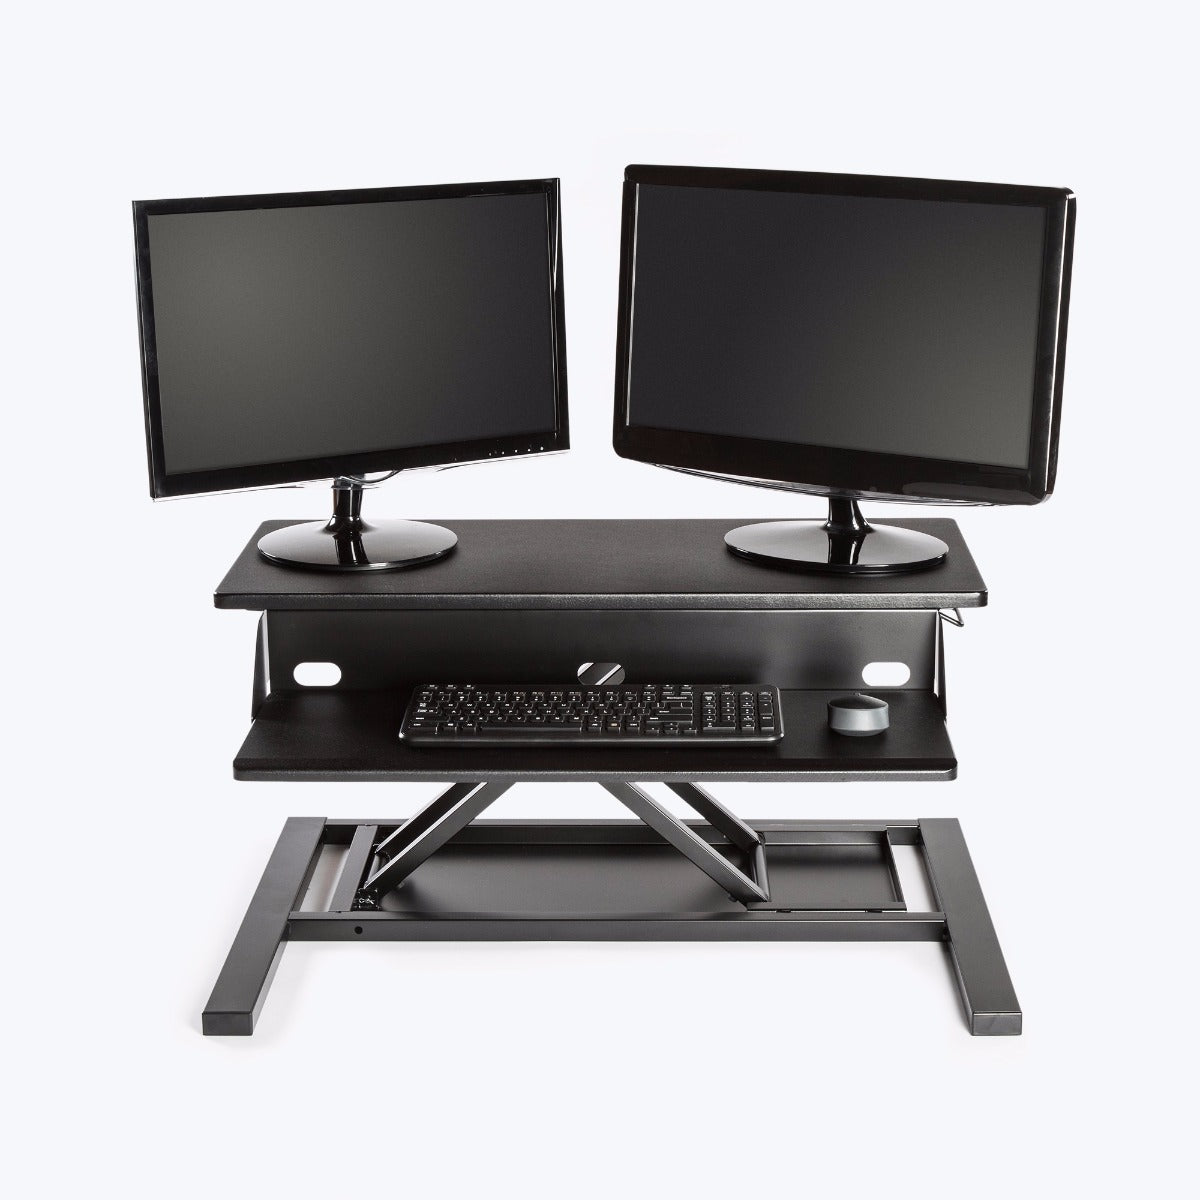 "Luxor Level Up 32 Pro Standing Desk Converter 32""W x 23.5""D x 5.25"" to 15.5""H (Black) - LVLUP PRO32-BK"